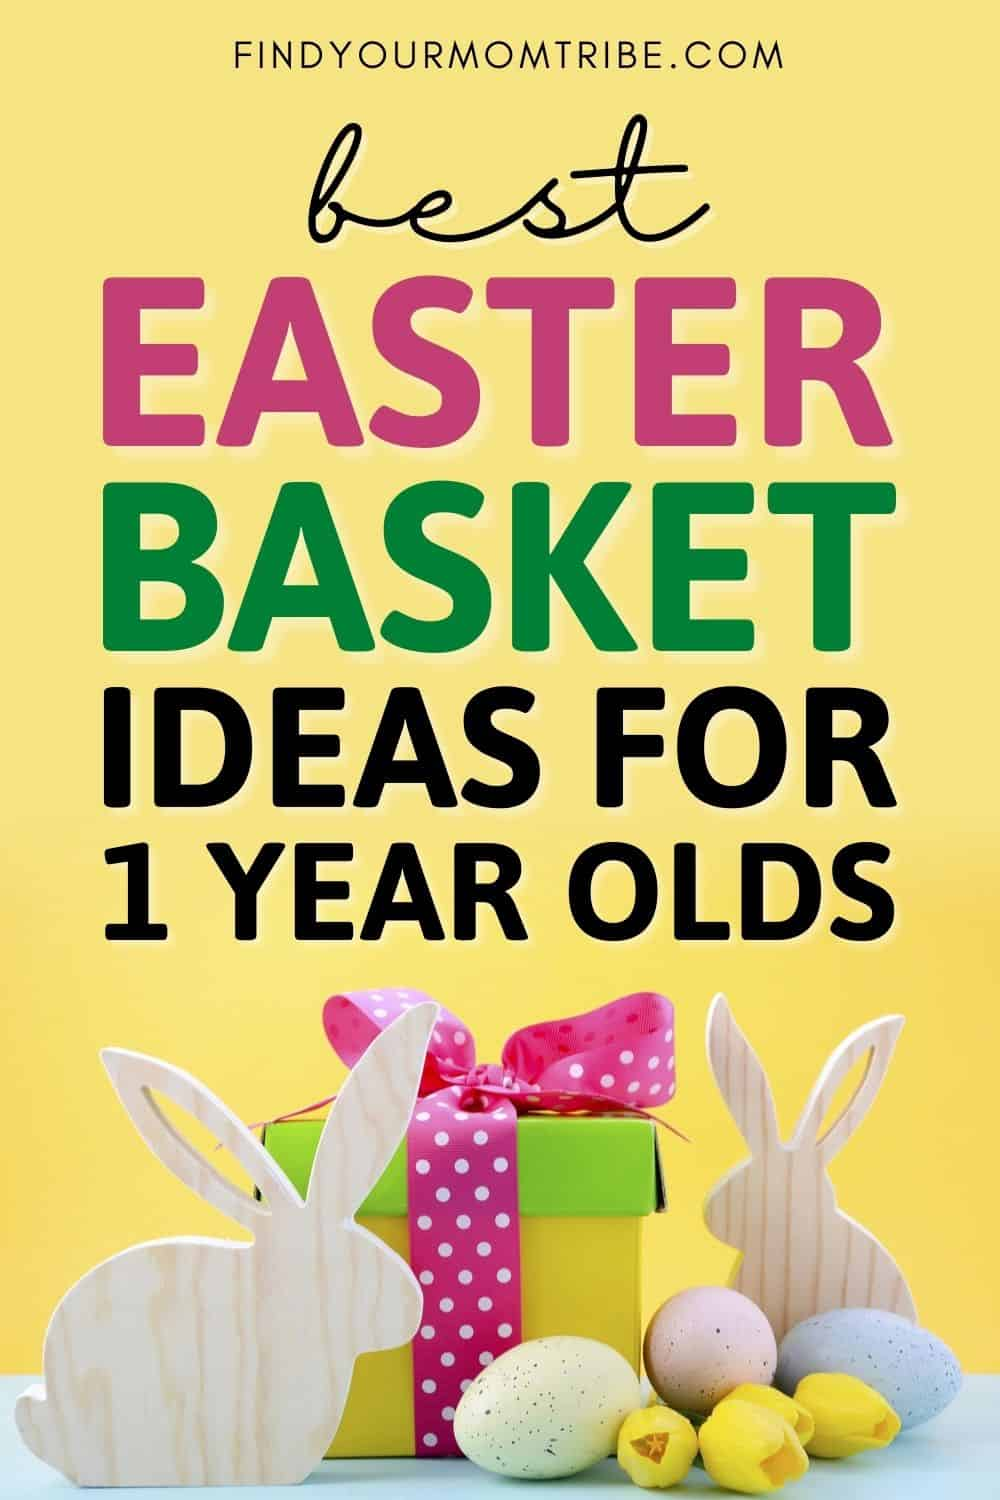 38 Best Ideas For An Easter Basket For 1 Year Olds Pinterest